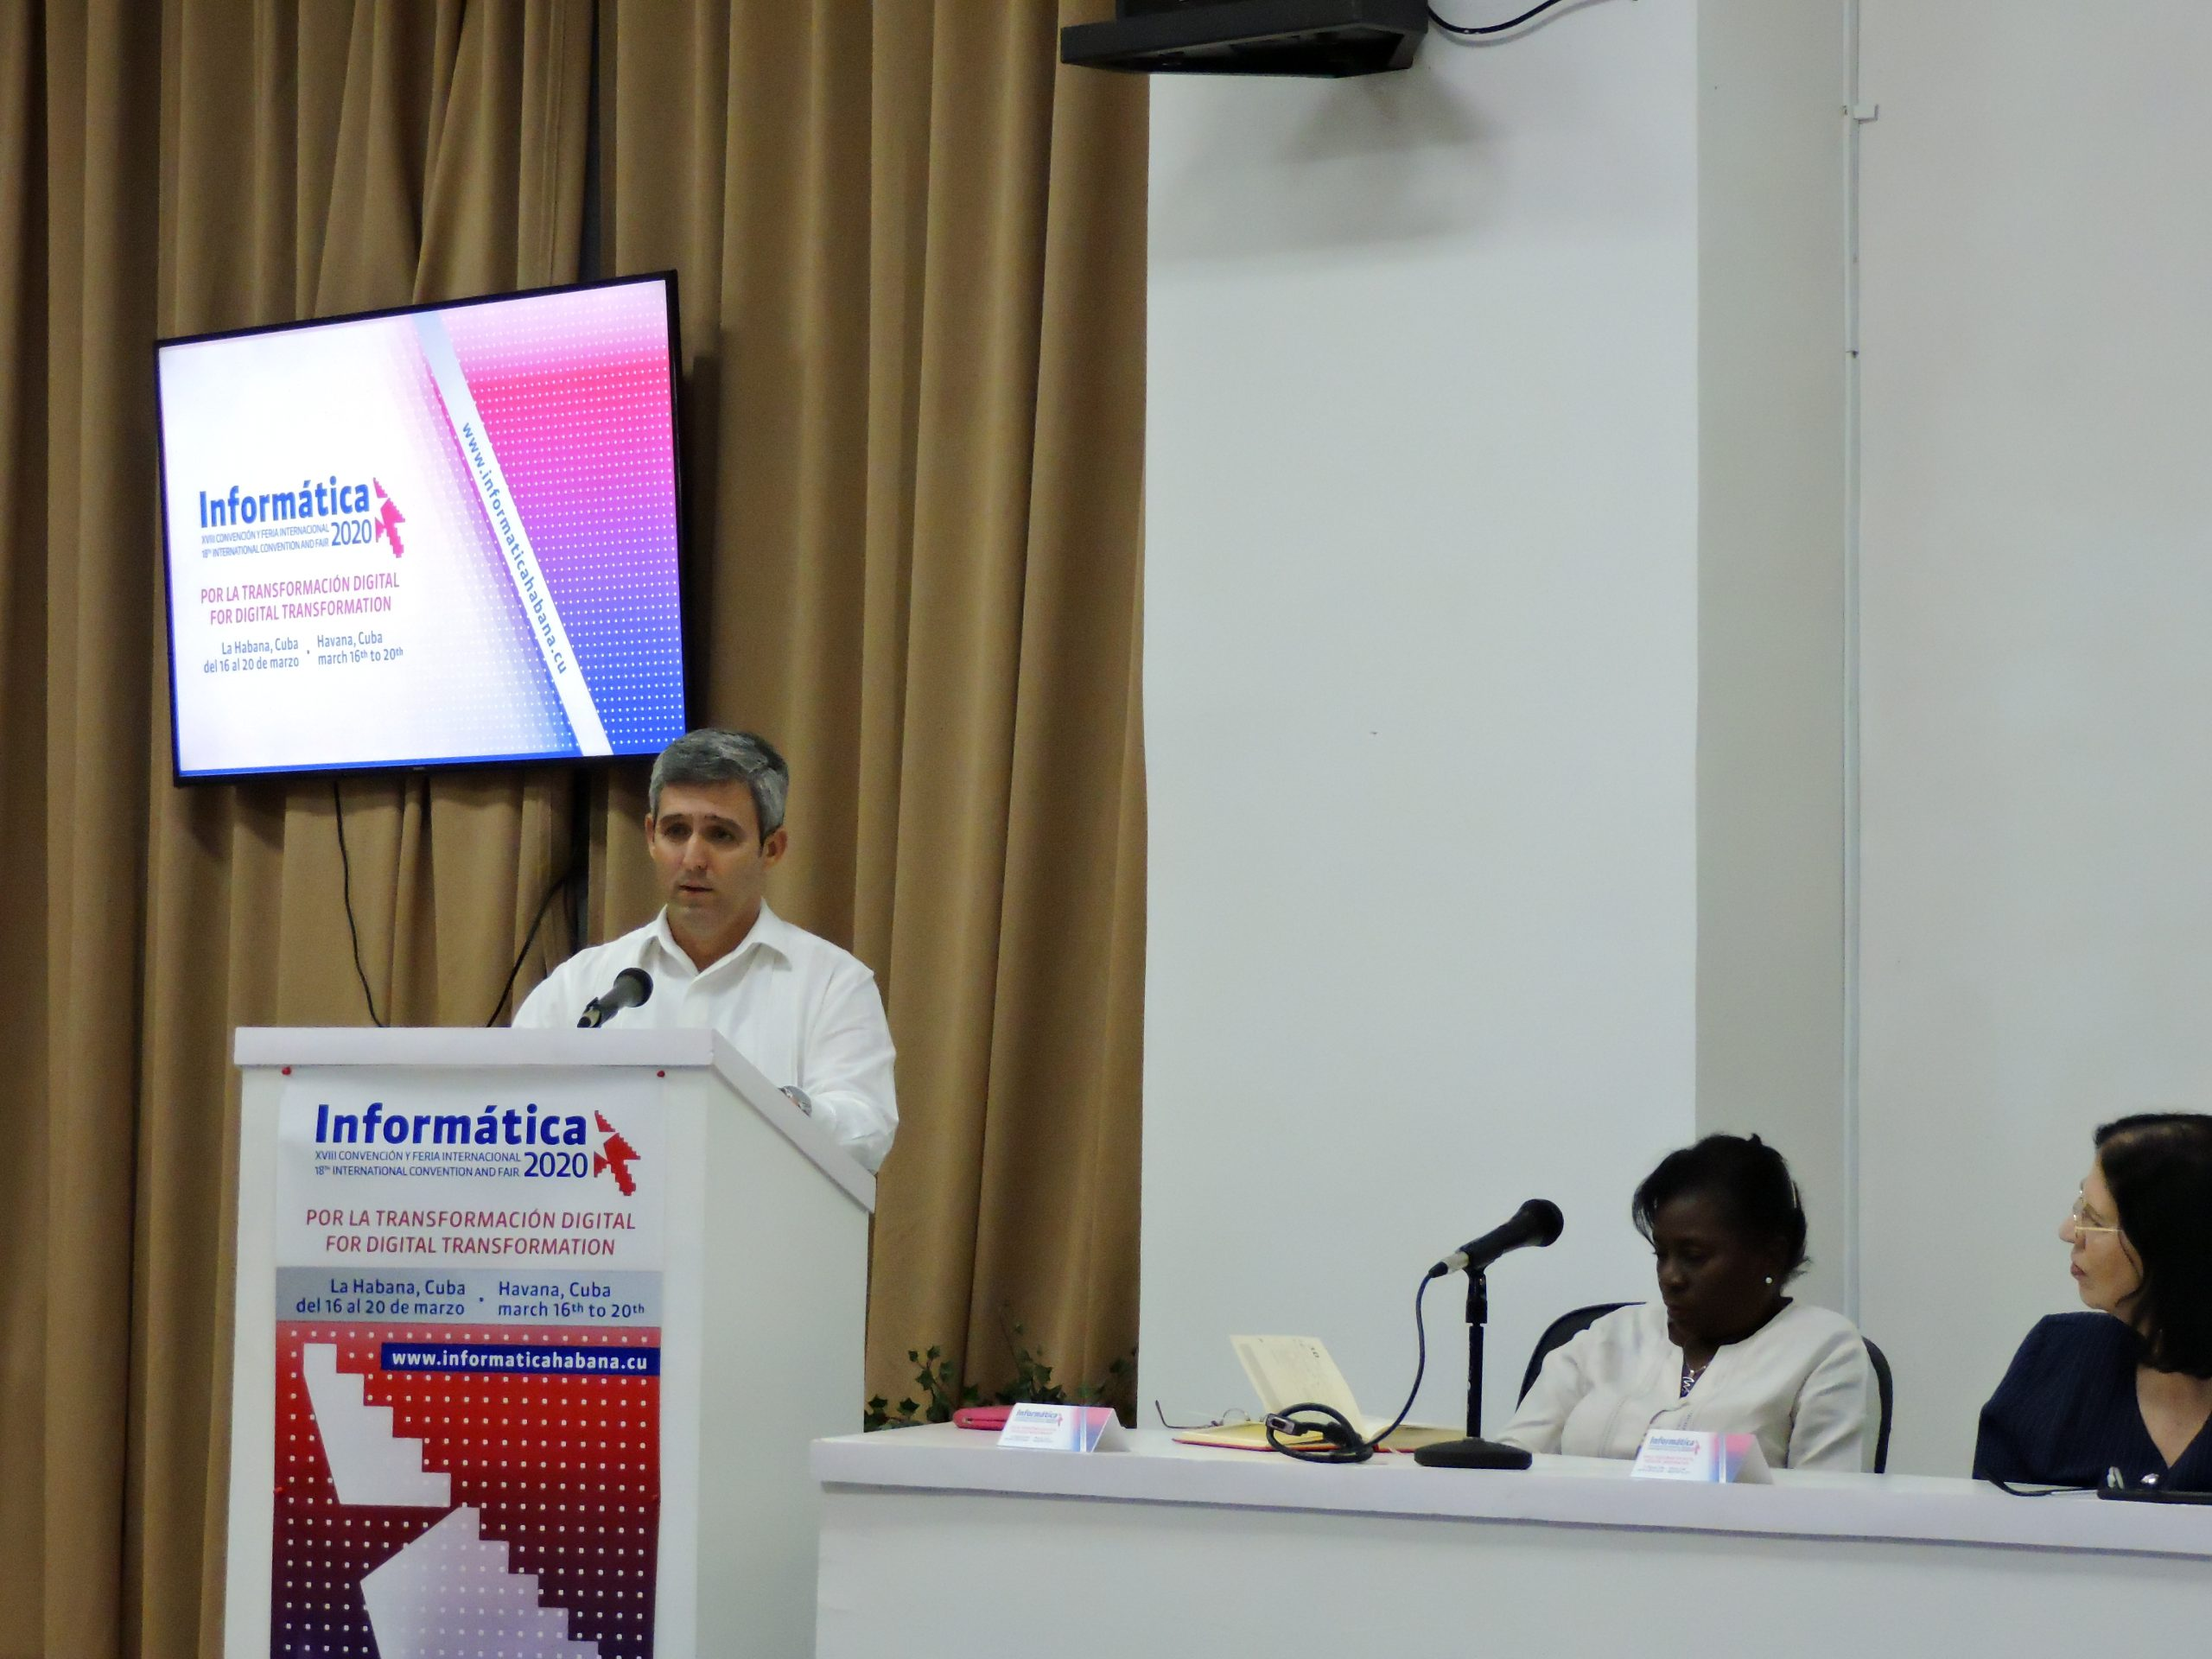 2020 Official speech of the Vice Prime Minister of Cuba, then Minister of Communications, Jorge Luis Perdomo Di-Lella, at the opening of INFORMÁTICA 2020